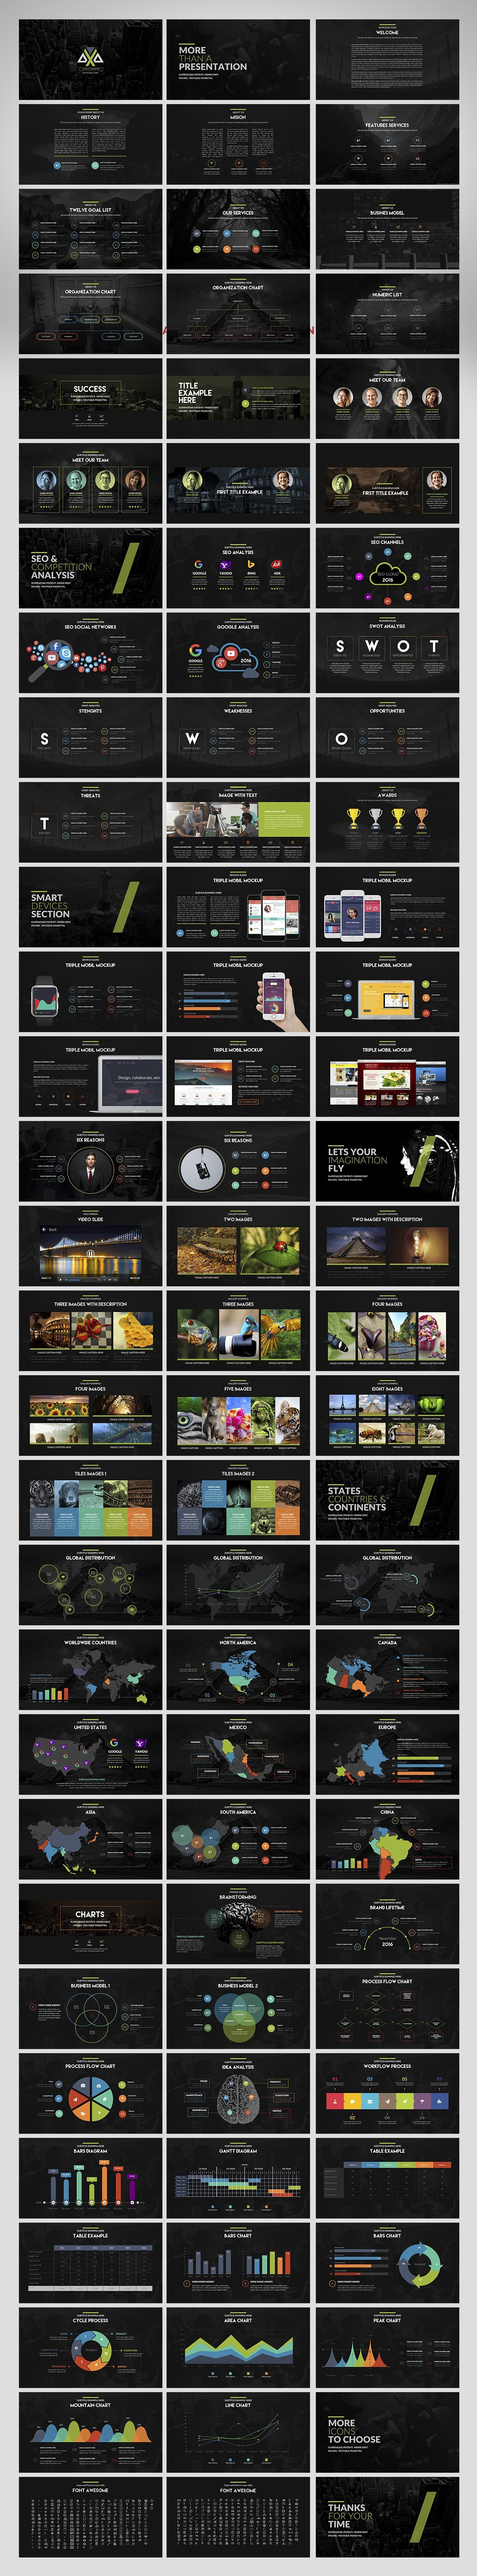 10 Best Seller PowerPoint Templates – Only $29 | InkyDeals